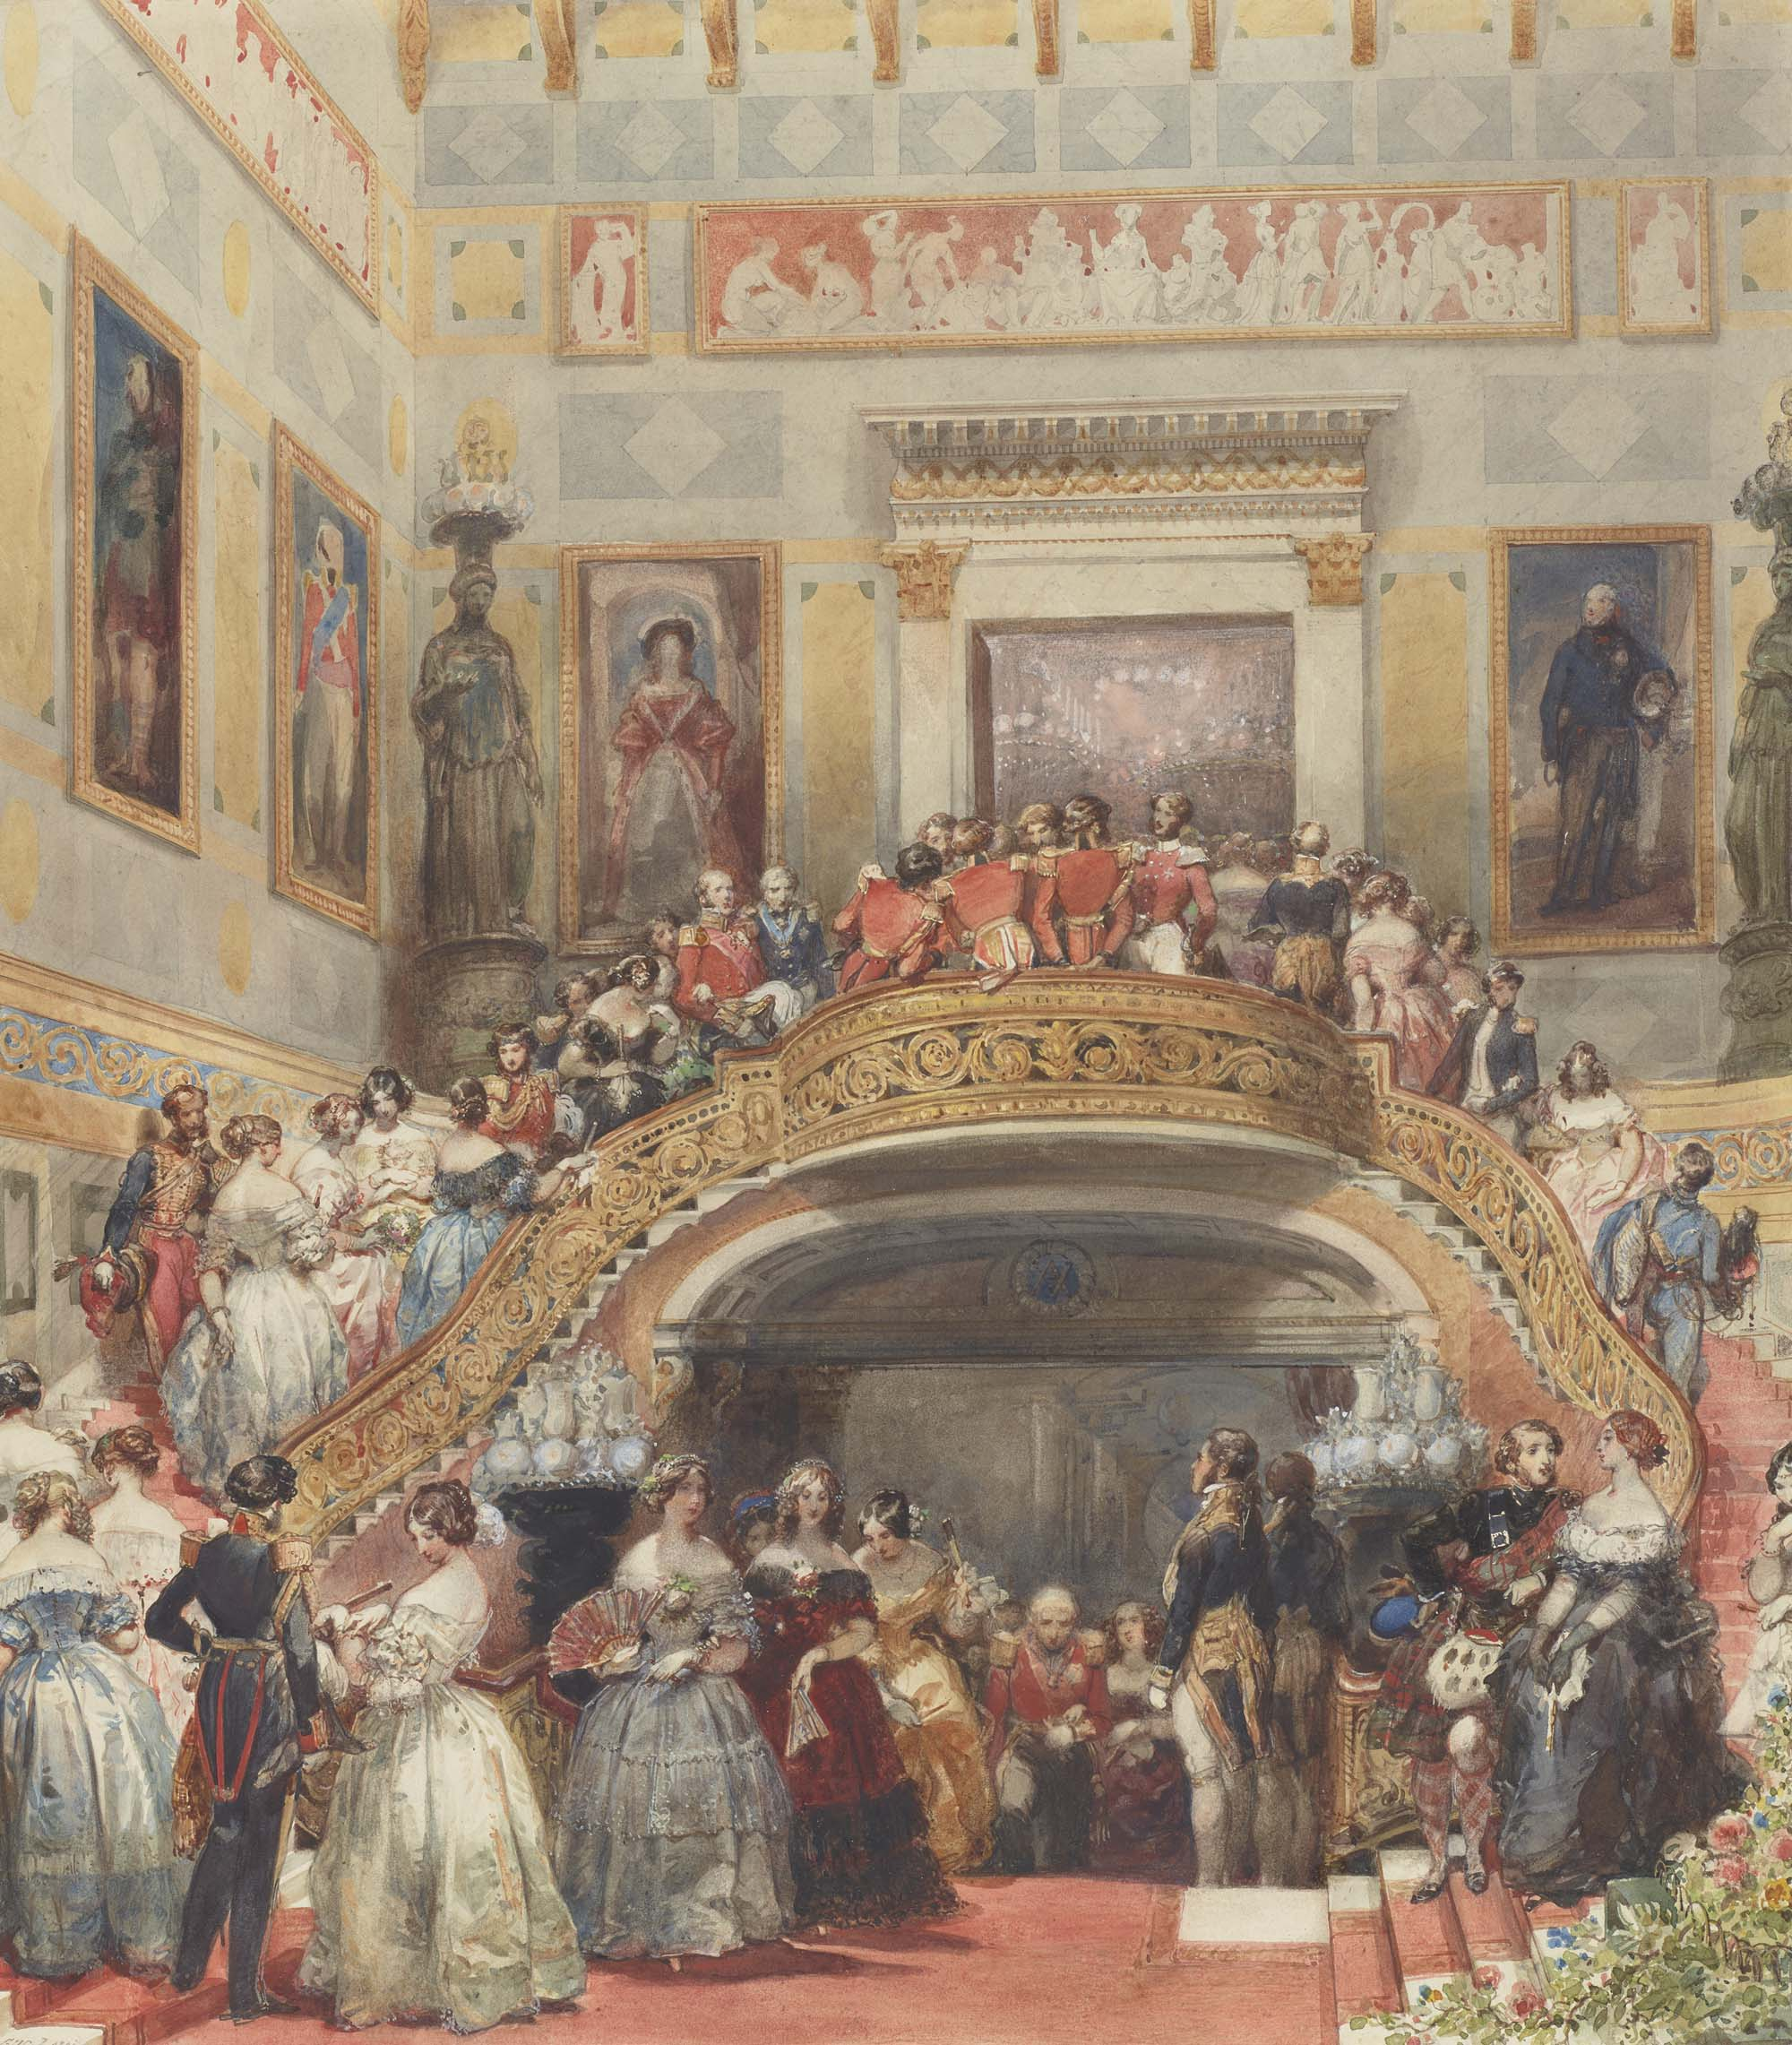 a watwercolour painting of Victorians in their finery crowding a grand staircase and hallway